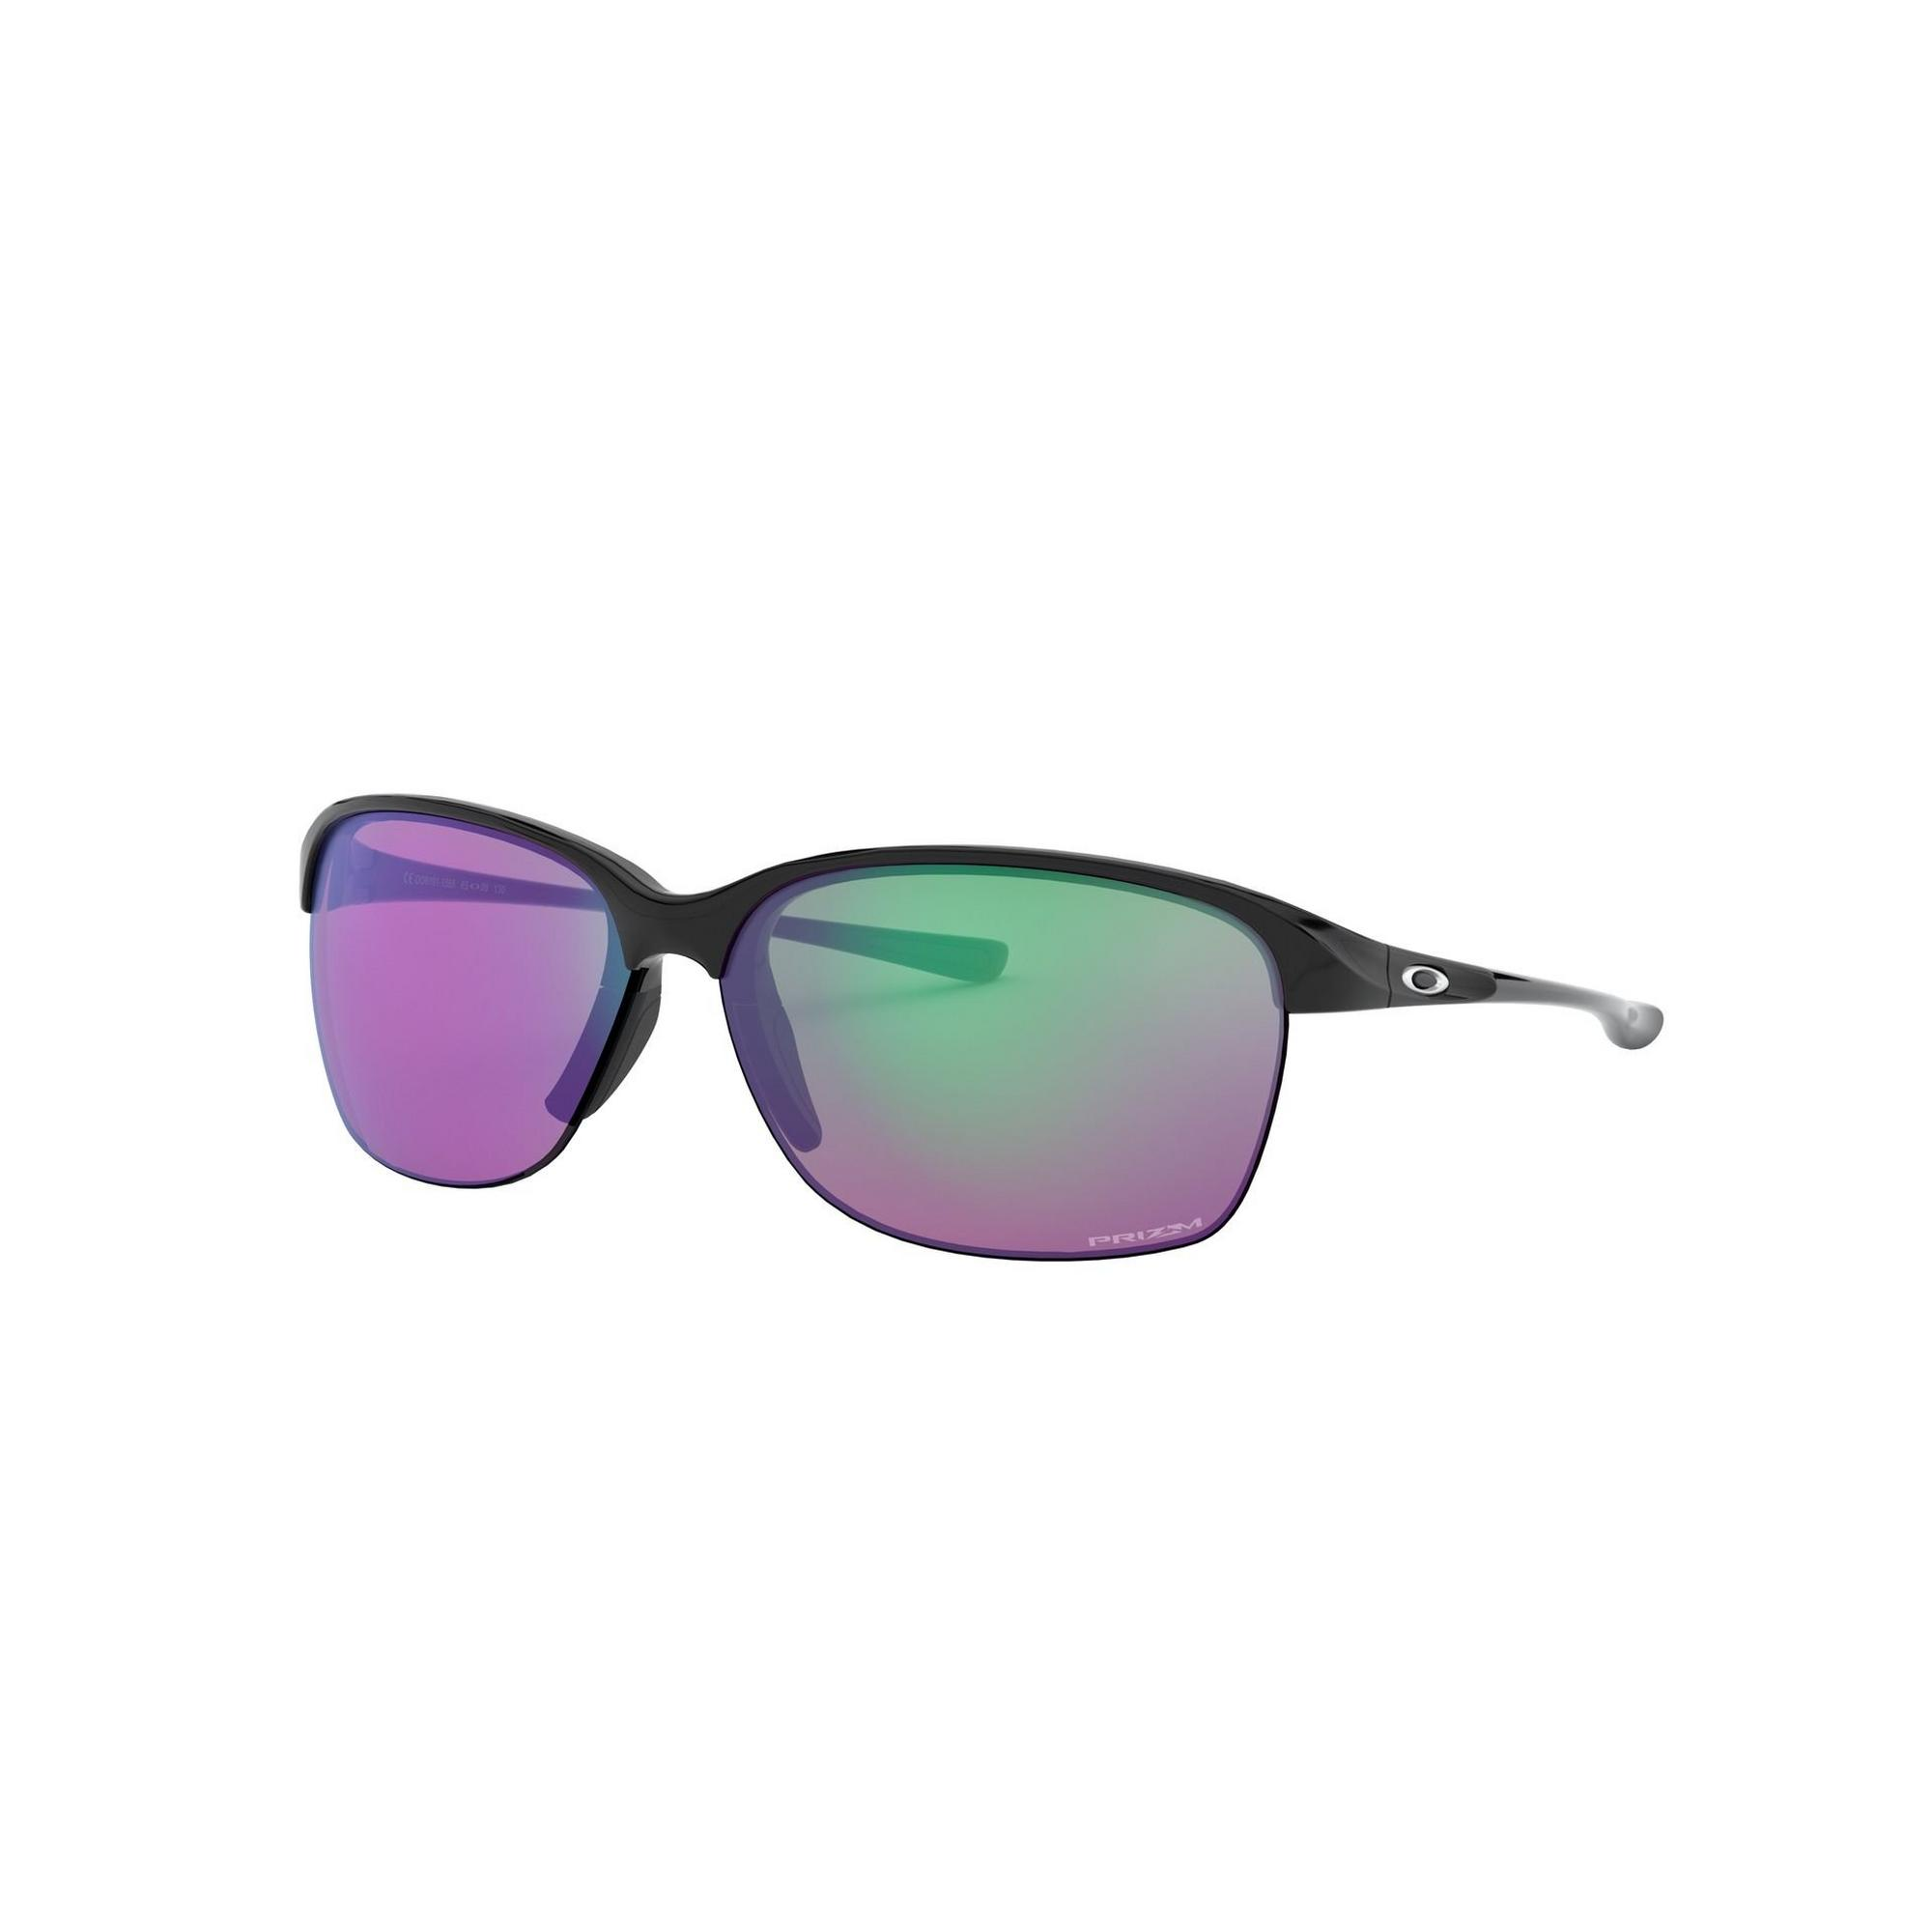 Women's Unstoppable Sunglasses